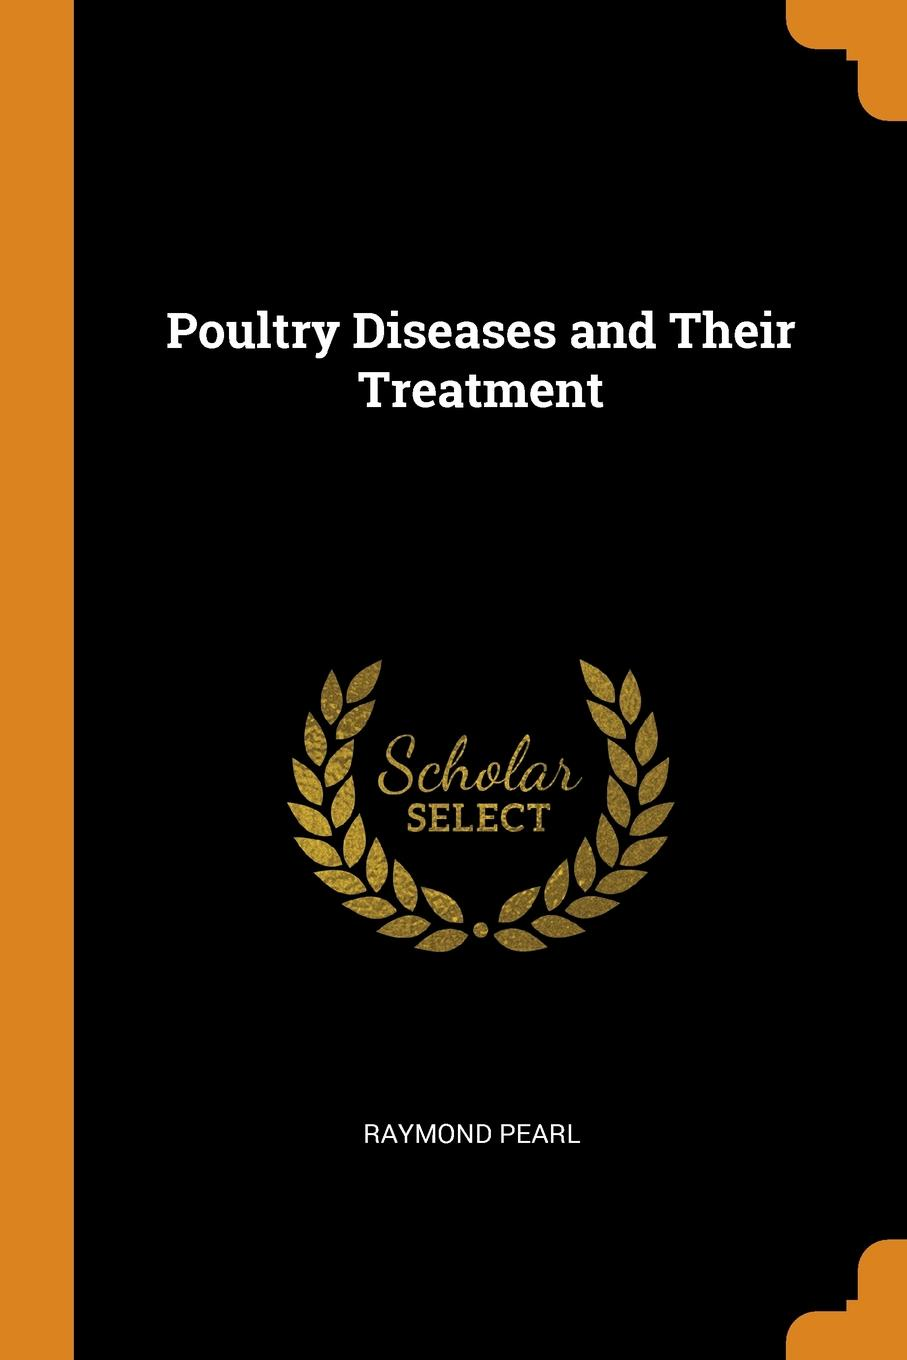 Raymond Pearl Poultry Diseases and Their Treatment